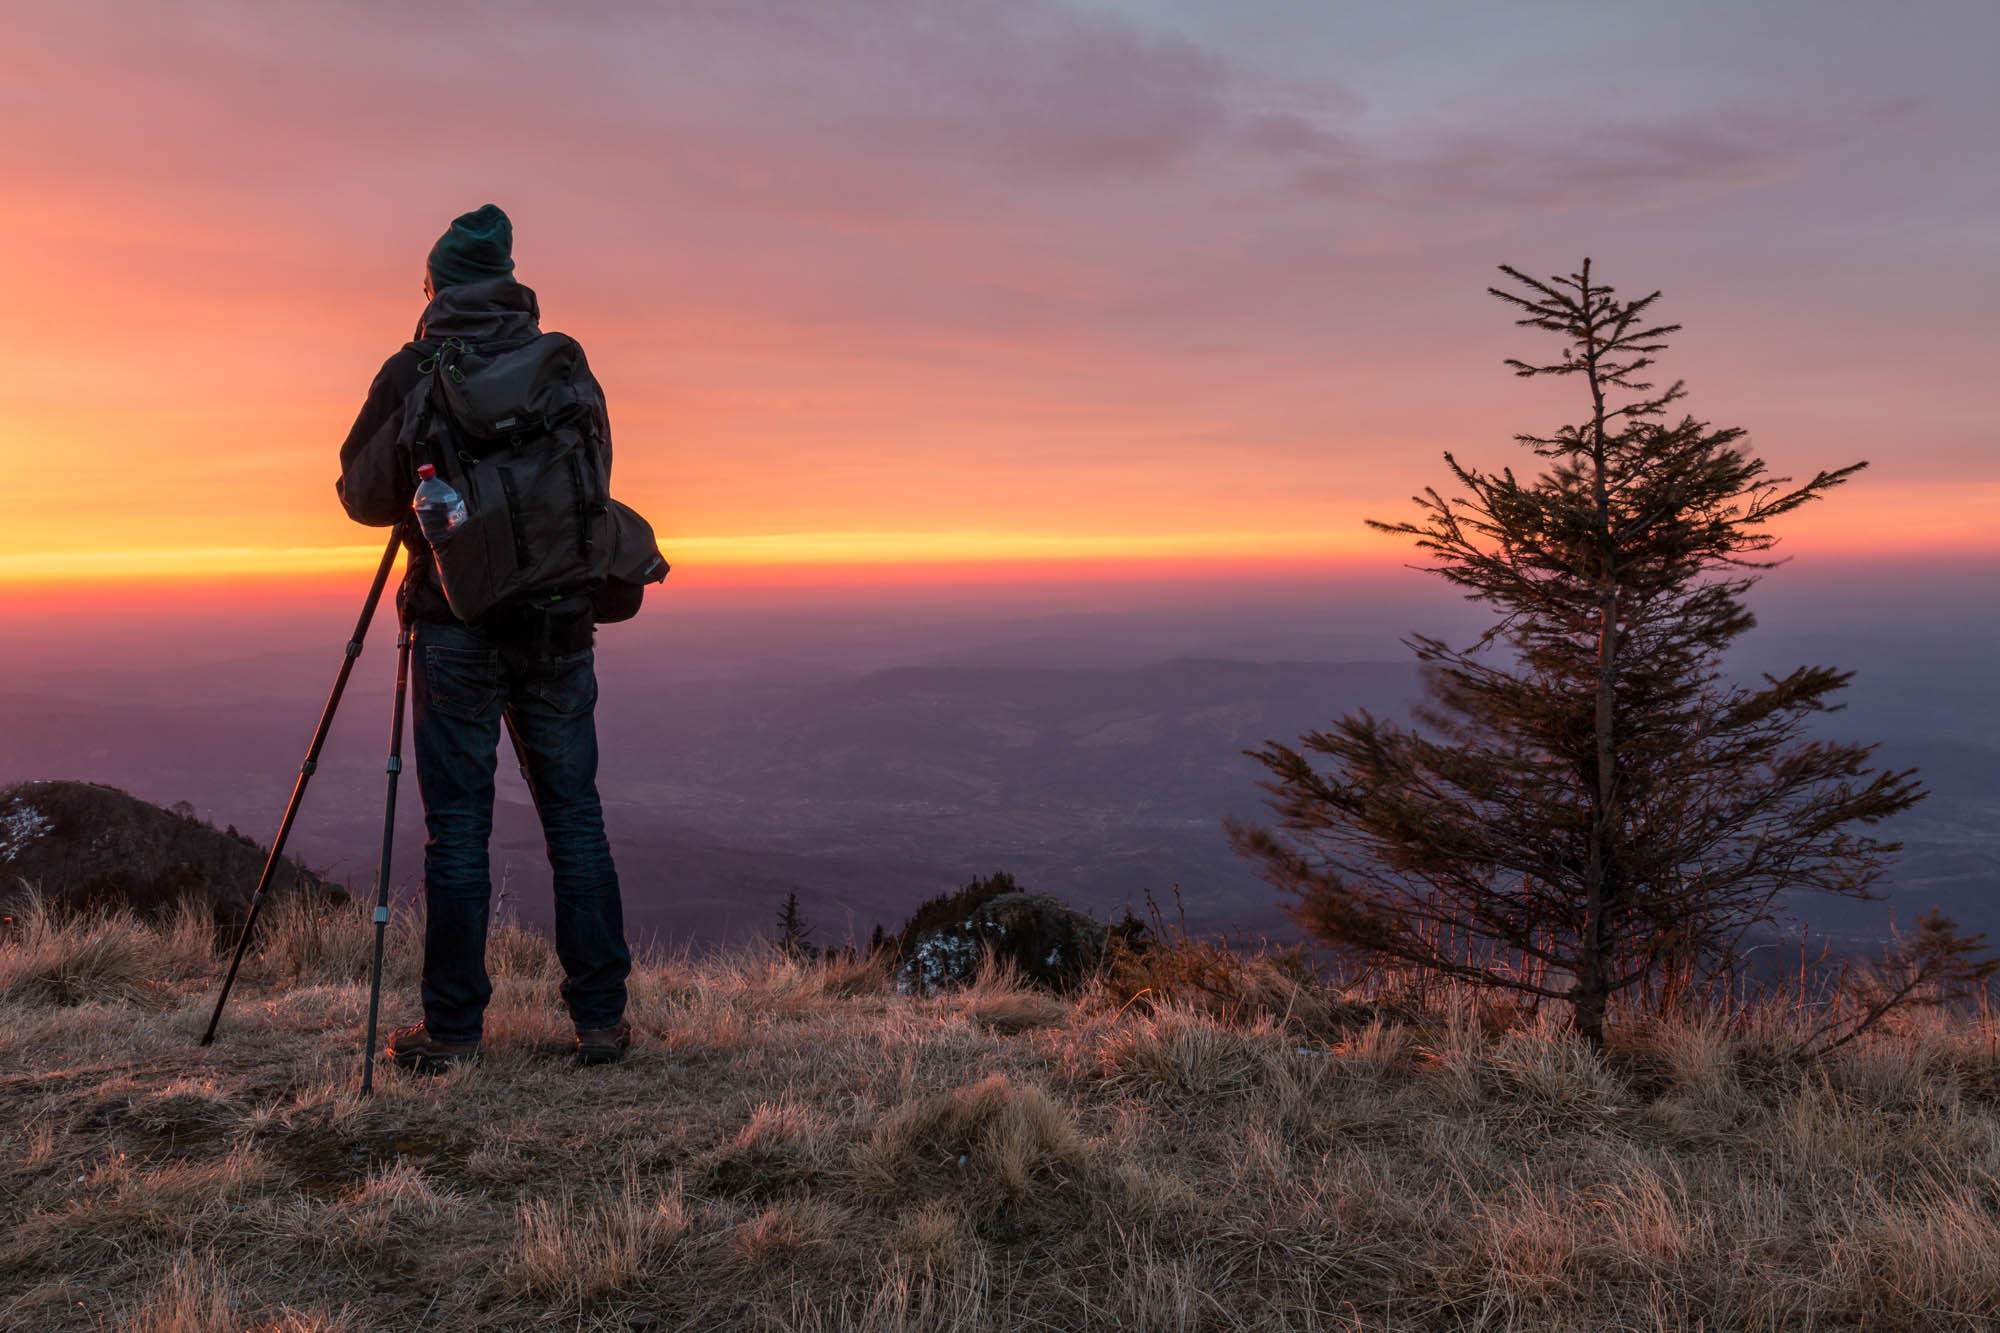 A photographer setting up the frame and capturing a sunrise in the Cozia Mountains, Romania